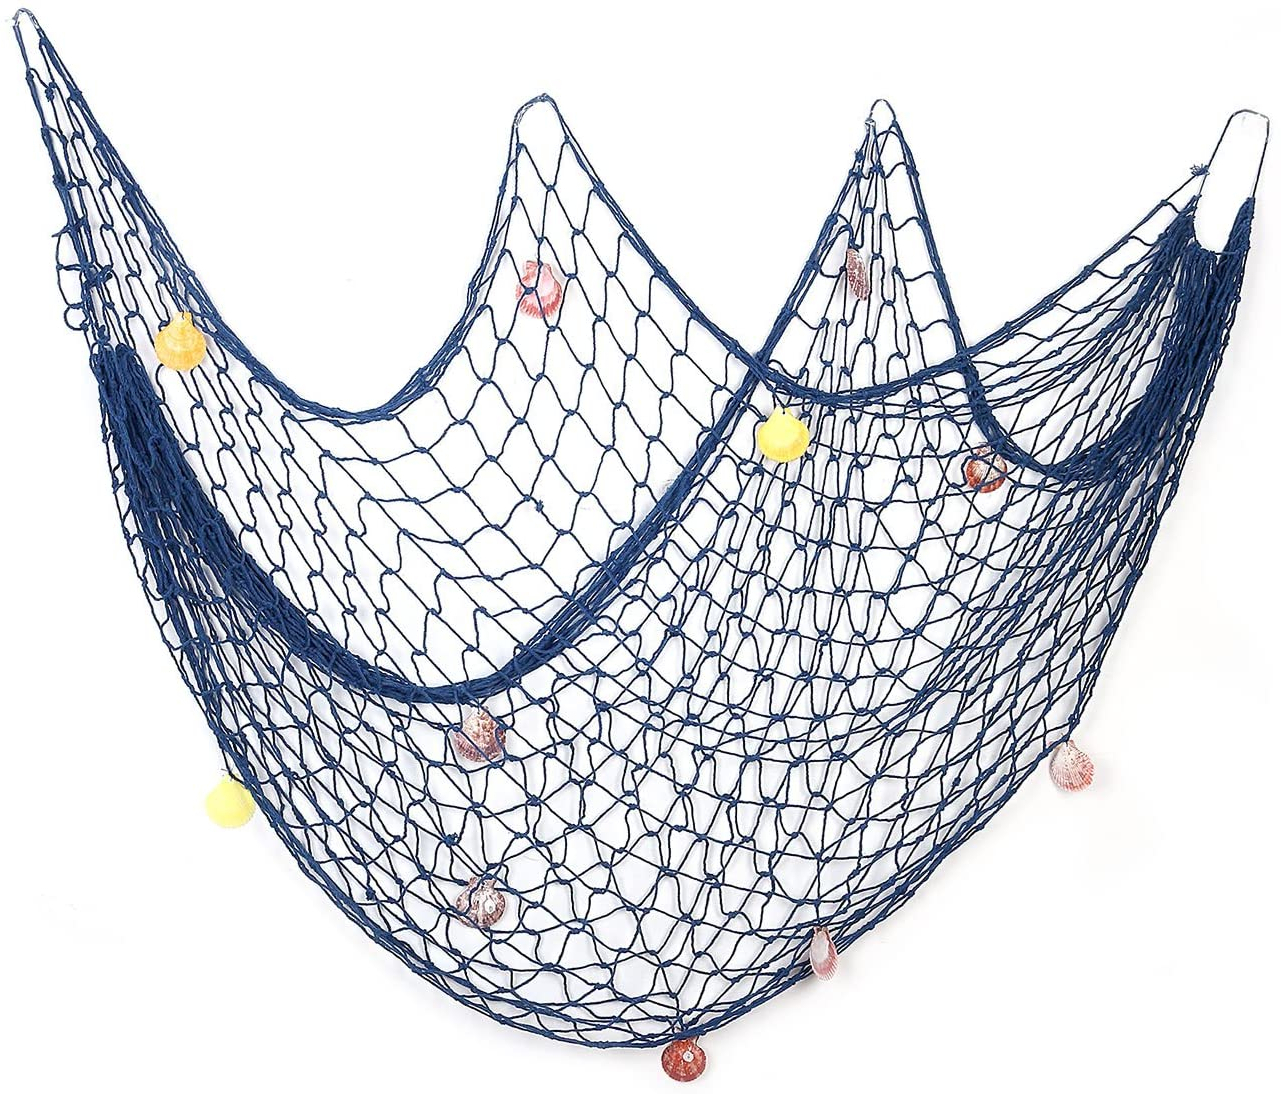 Yagote 79inch X 39inch Decorative Fish Net With Shells Blue Mediterranean Style Nautical Decorative Fishing Net Hanging Home Decor Room Throughout 2019 Handcrafted Hanging Fish In Net Wall Décor (View 7 of 20)